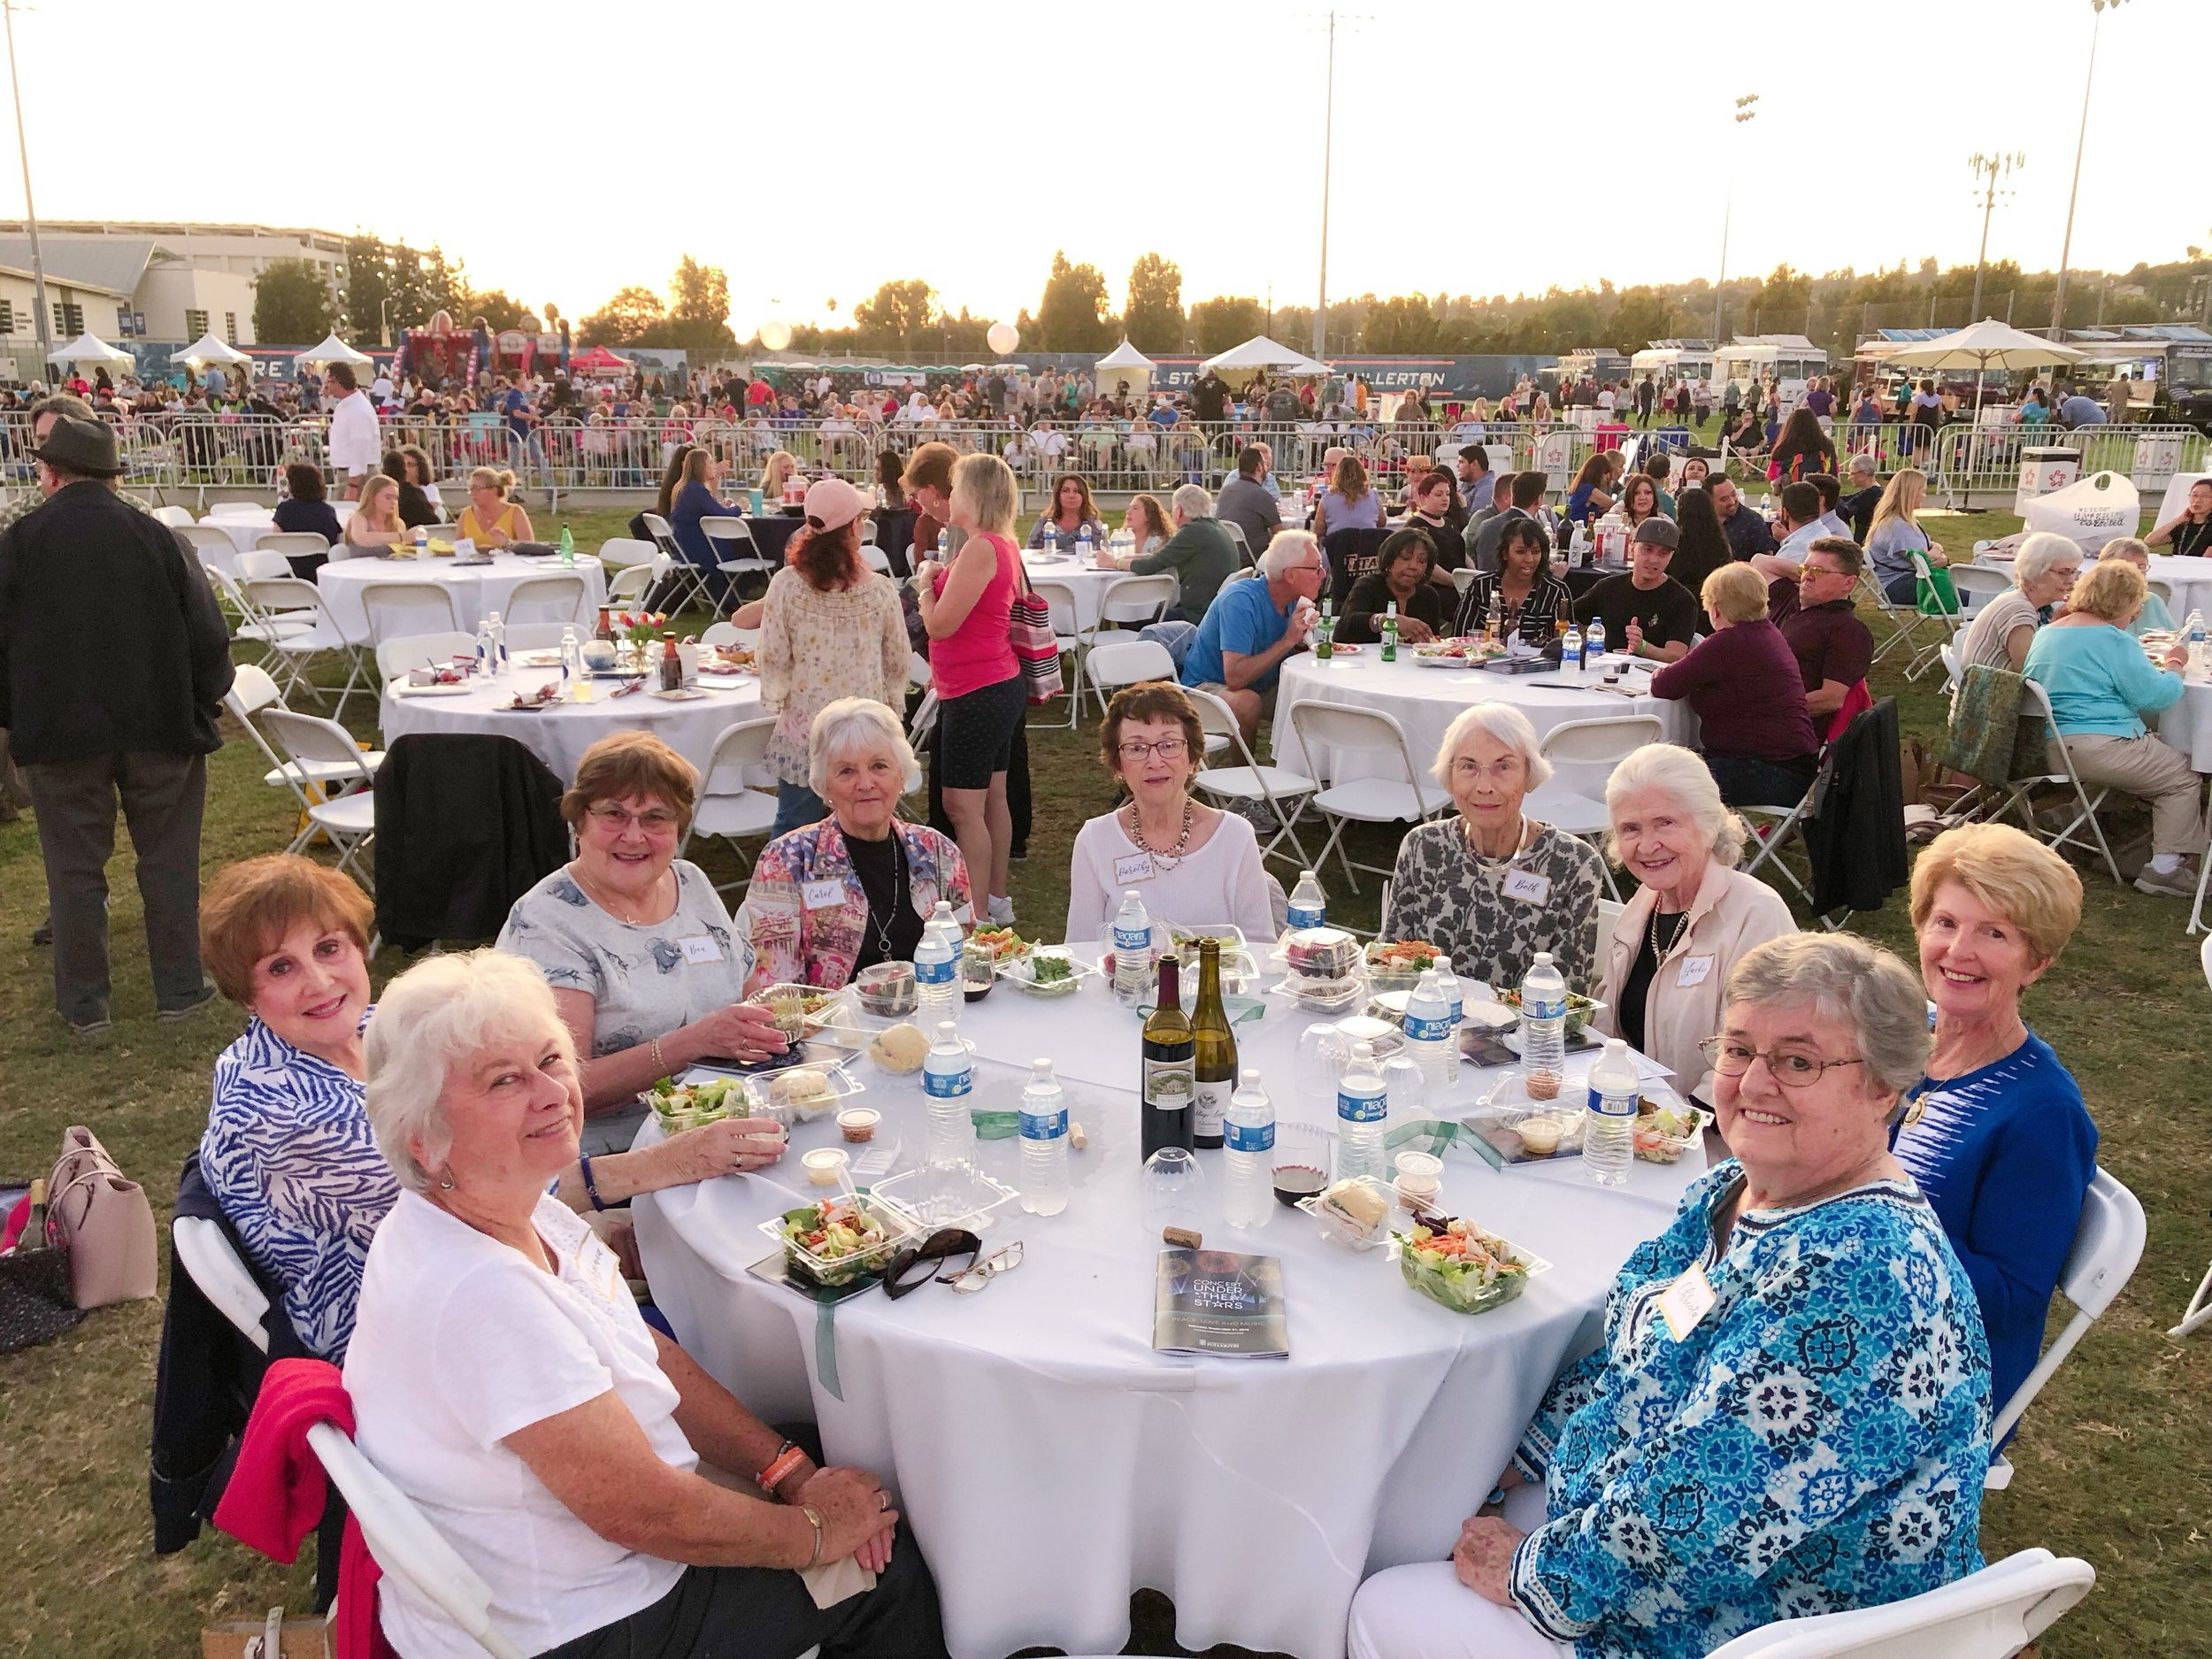 A few of our guests from this year's Ladies Night Out. Take a look at our Facebook page for more photos.